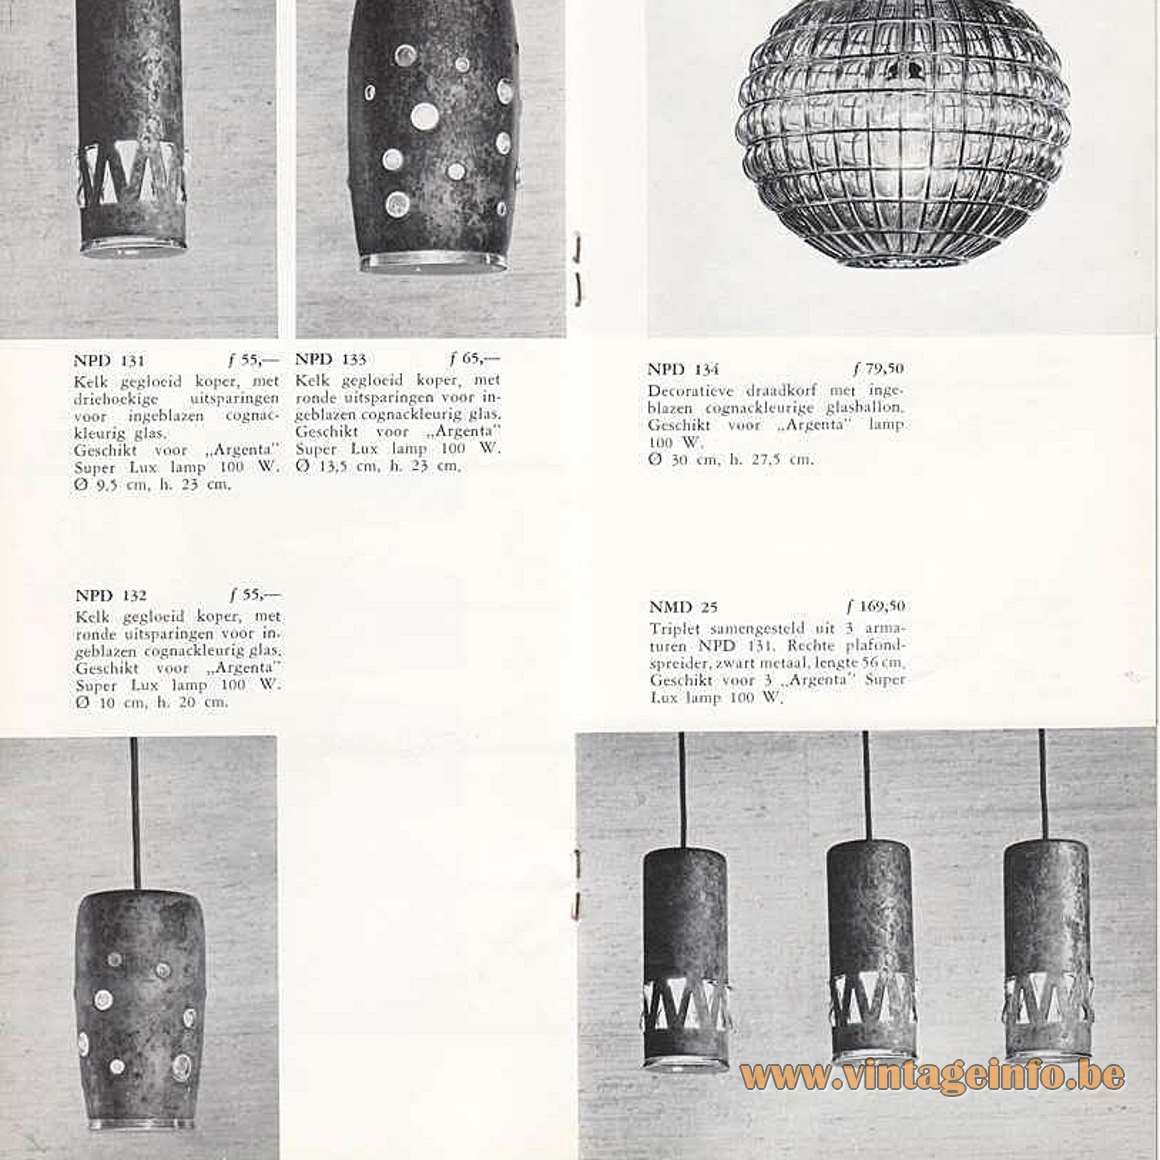 Burned Copper Caged Glass Pendant Lamps - Philips 1967 lighting catalogue